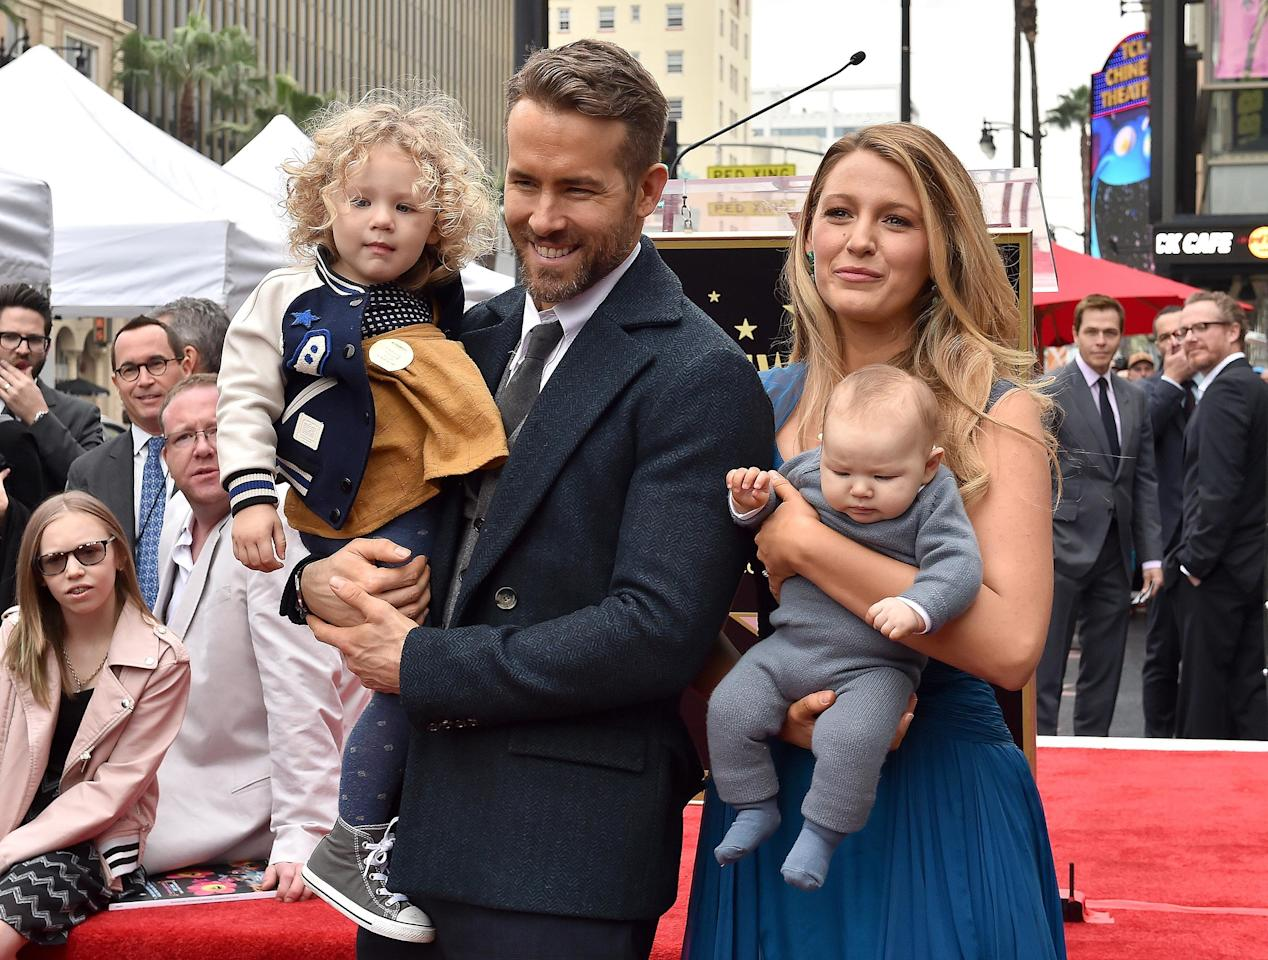 The first time we got a glimpse of their adorable family was at Reynolds' Walk of Fame ceremony in December 2016.